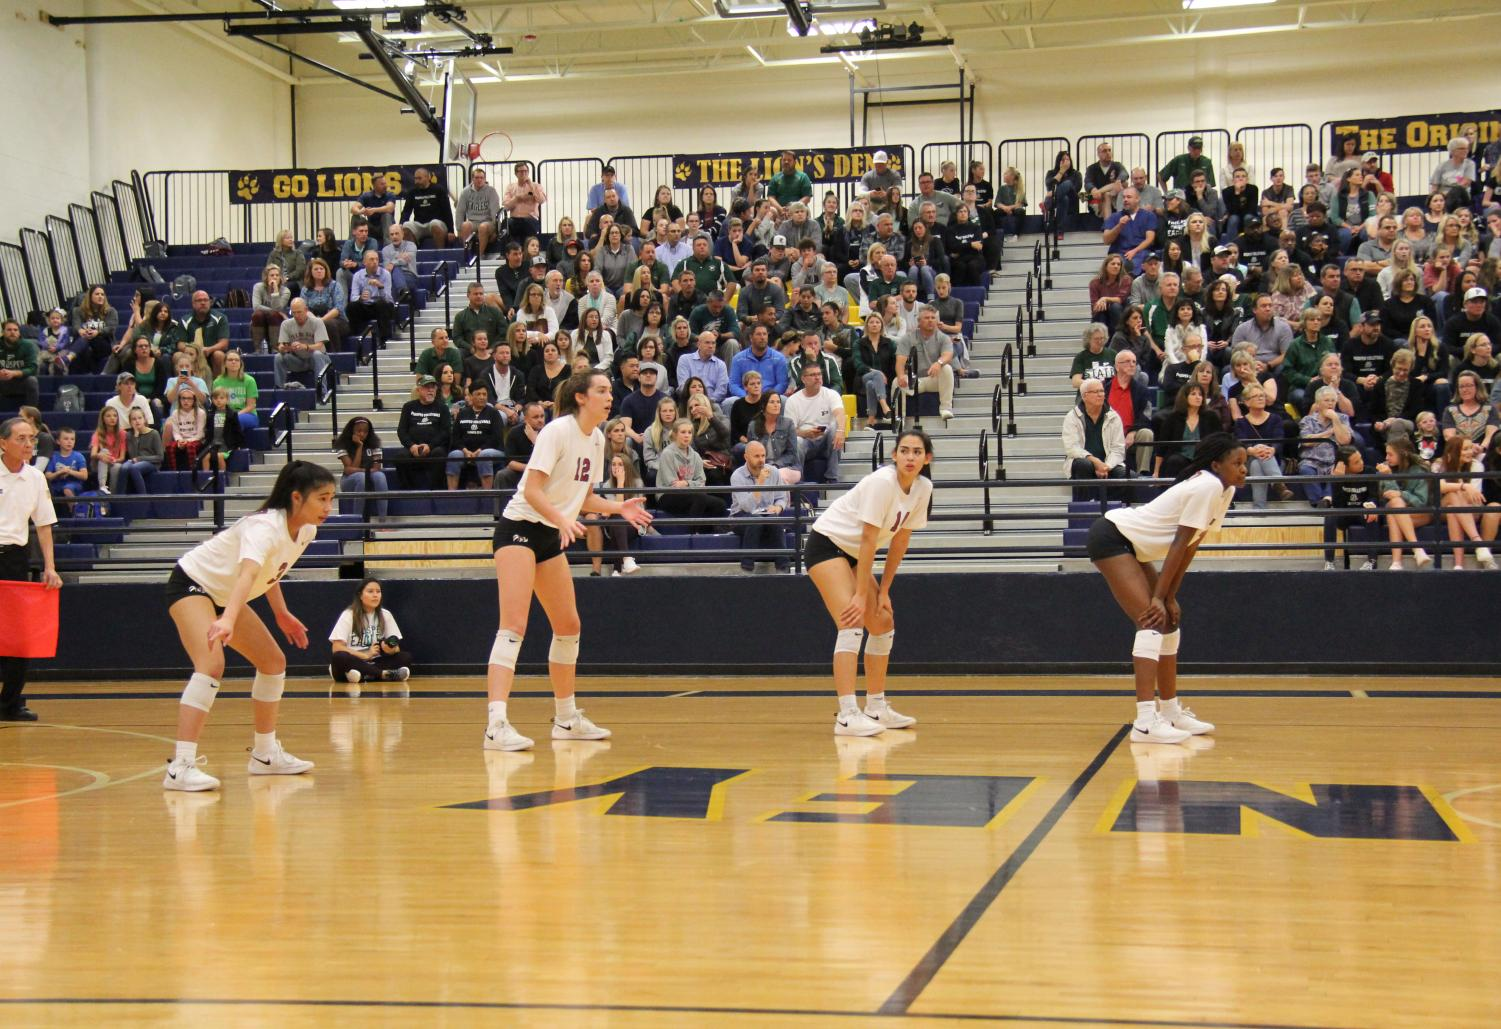 Lady Wildcats Trinidy Huynh, Julia Adams, Evie Bordeaux and Rutendo Chando line up for a play at Mckinney Boyd